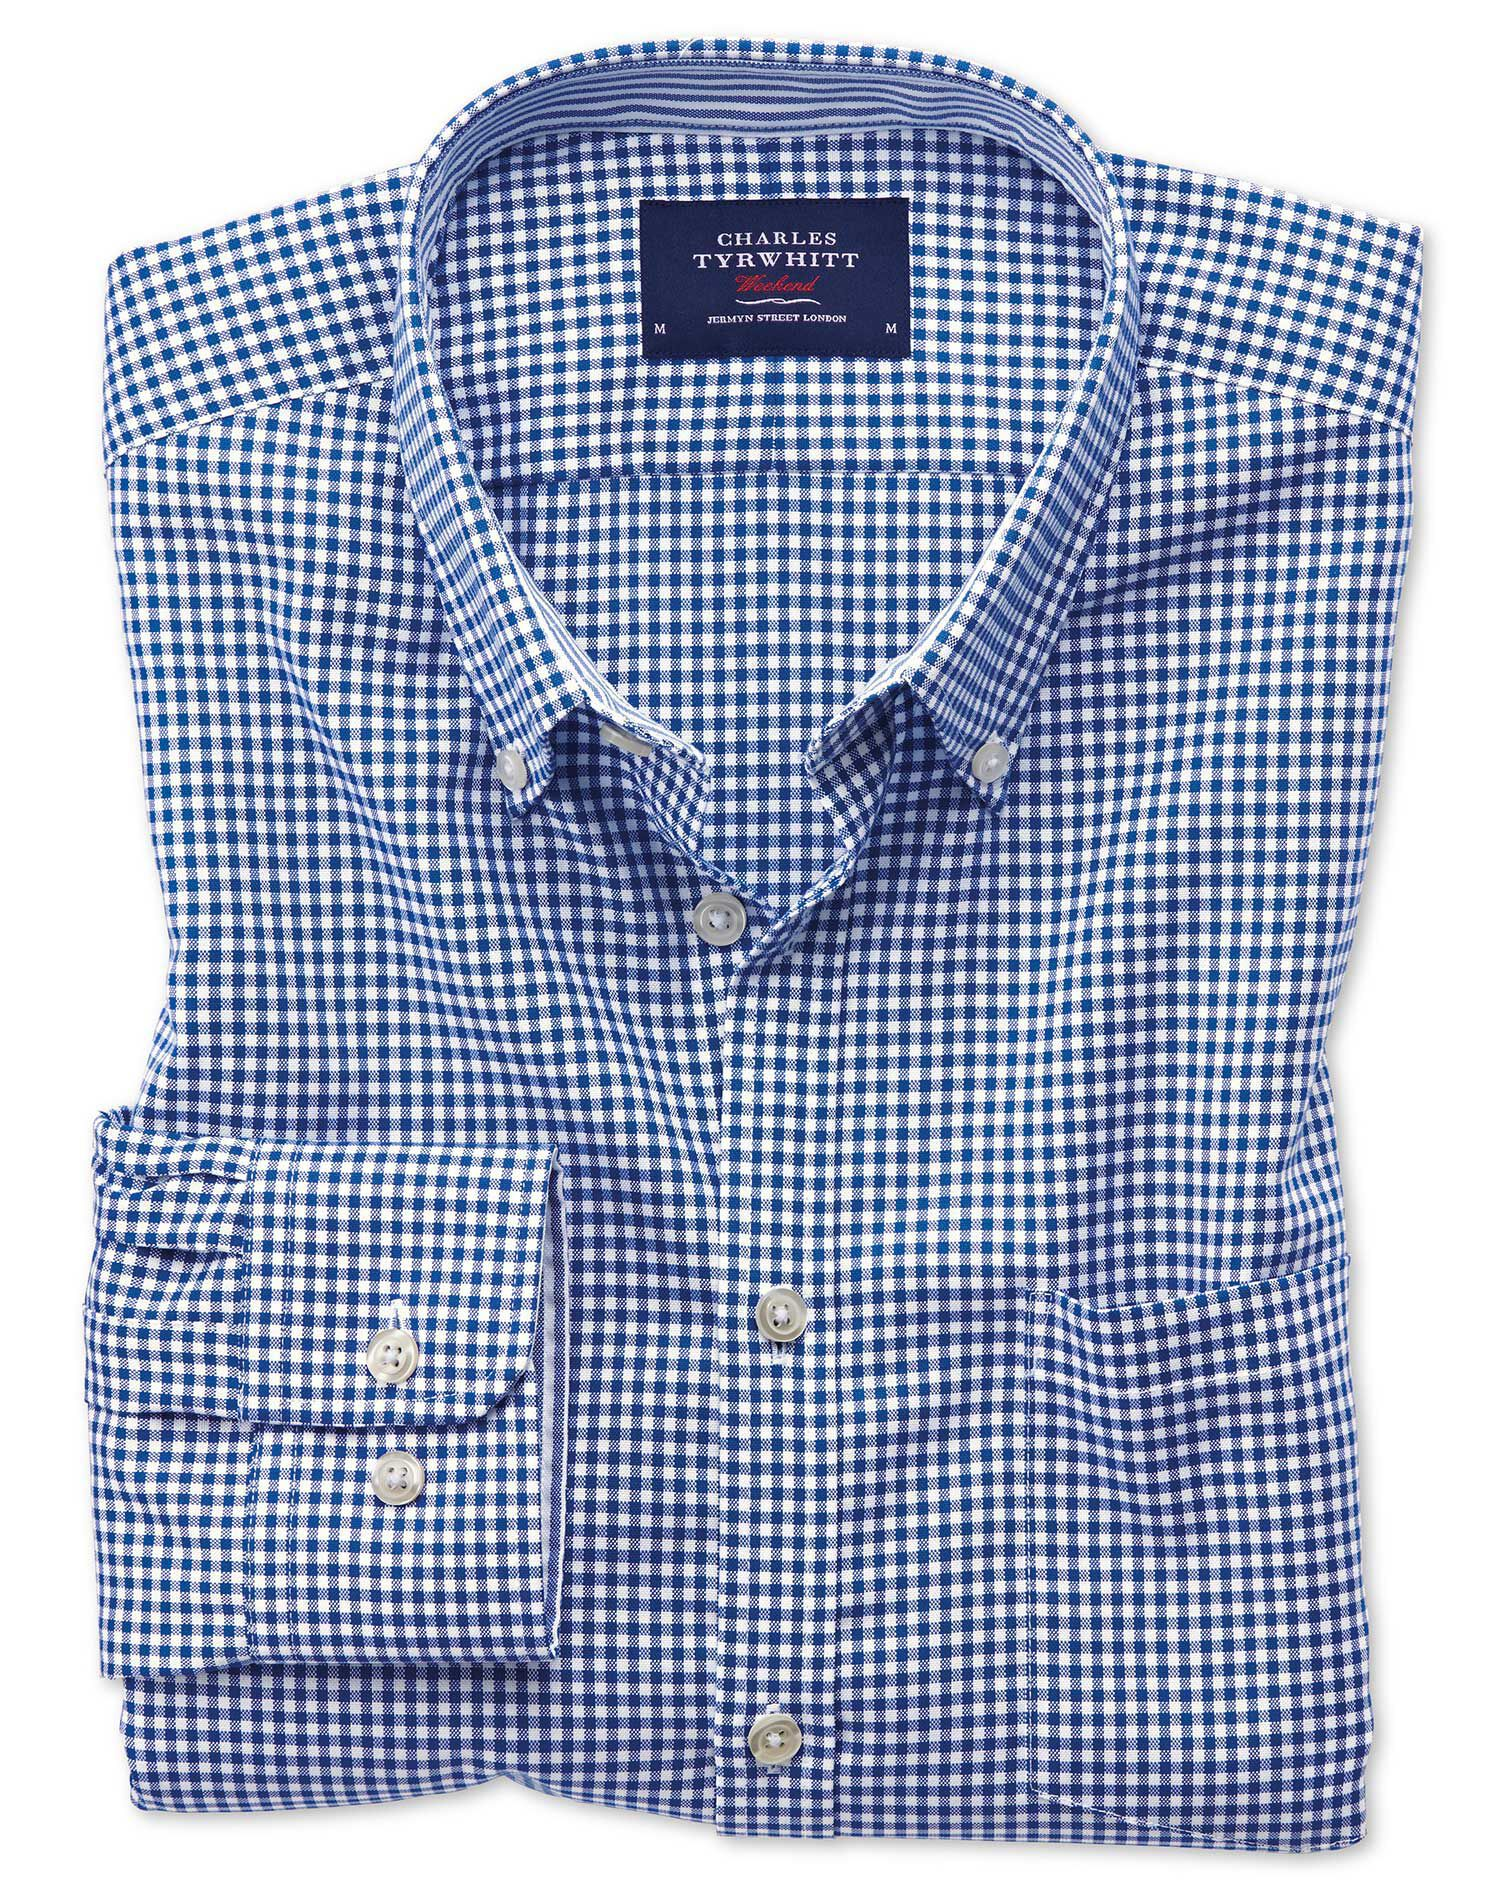 Slim Fit Button-Down Non-Iron Oxford Gingham Royal Blue Cotton Shirt Single Cuff Size XS by Charles